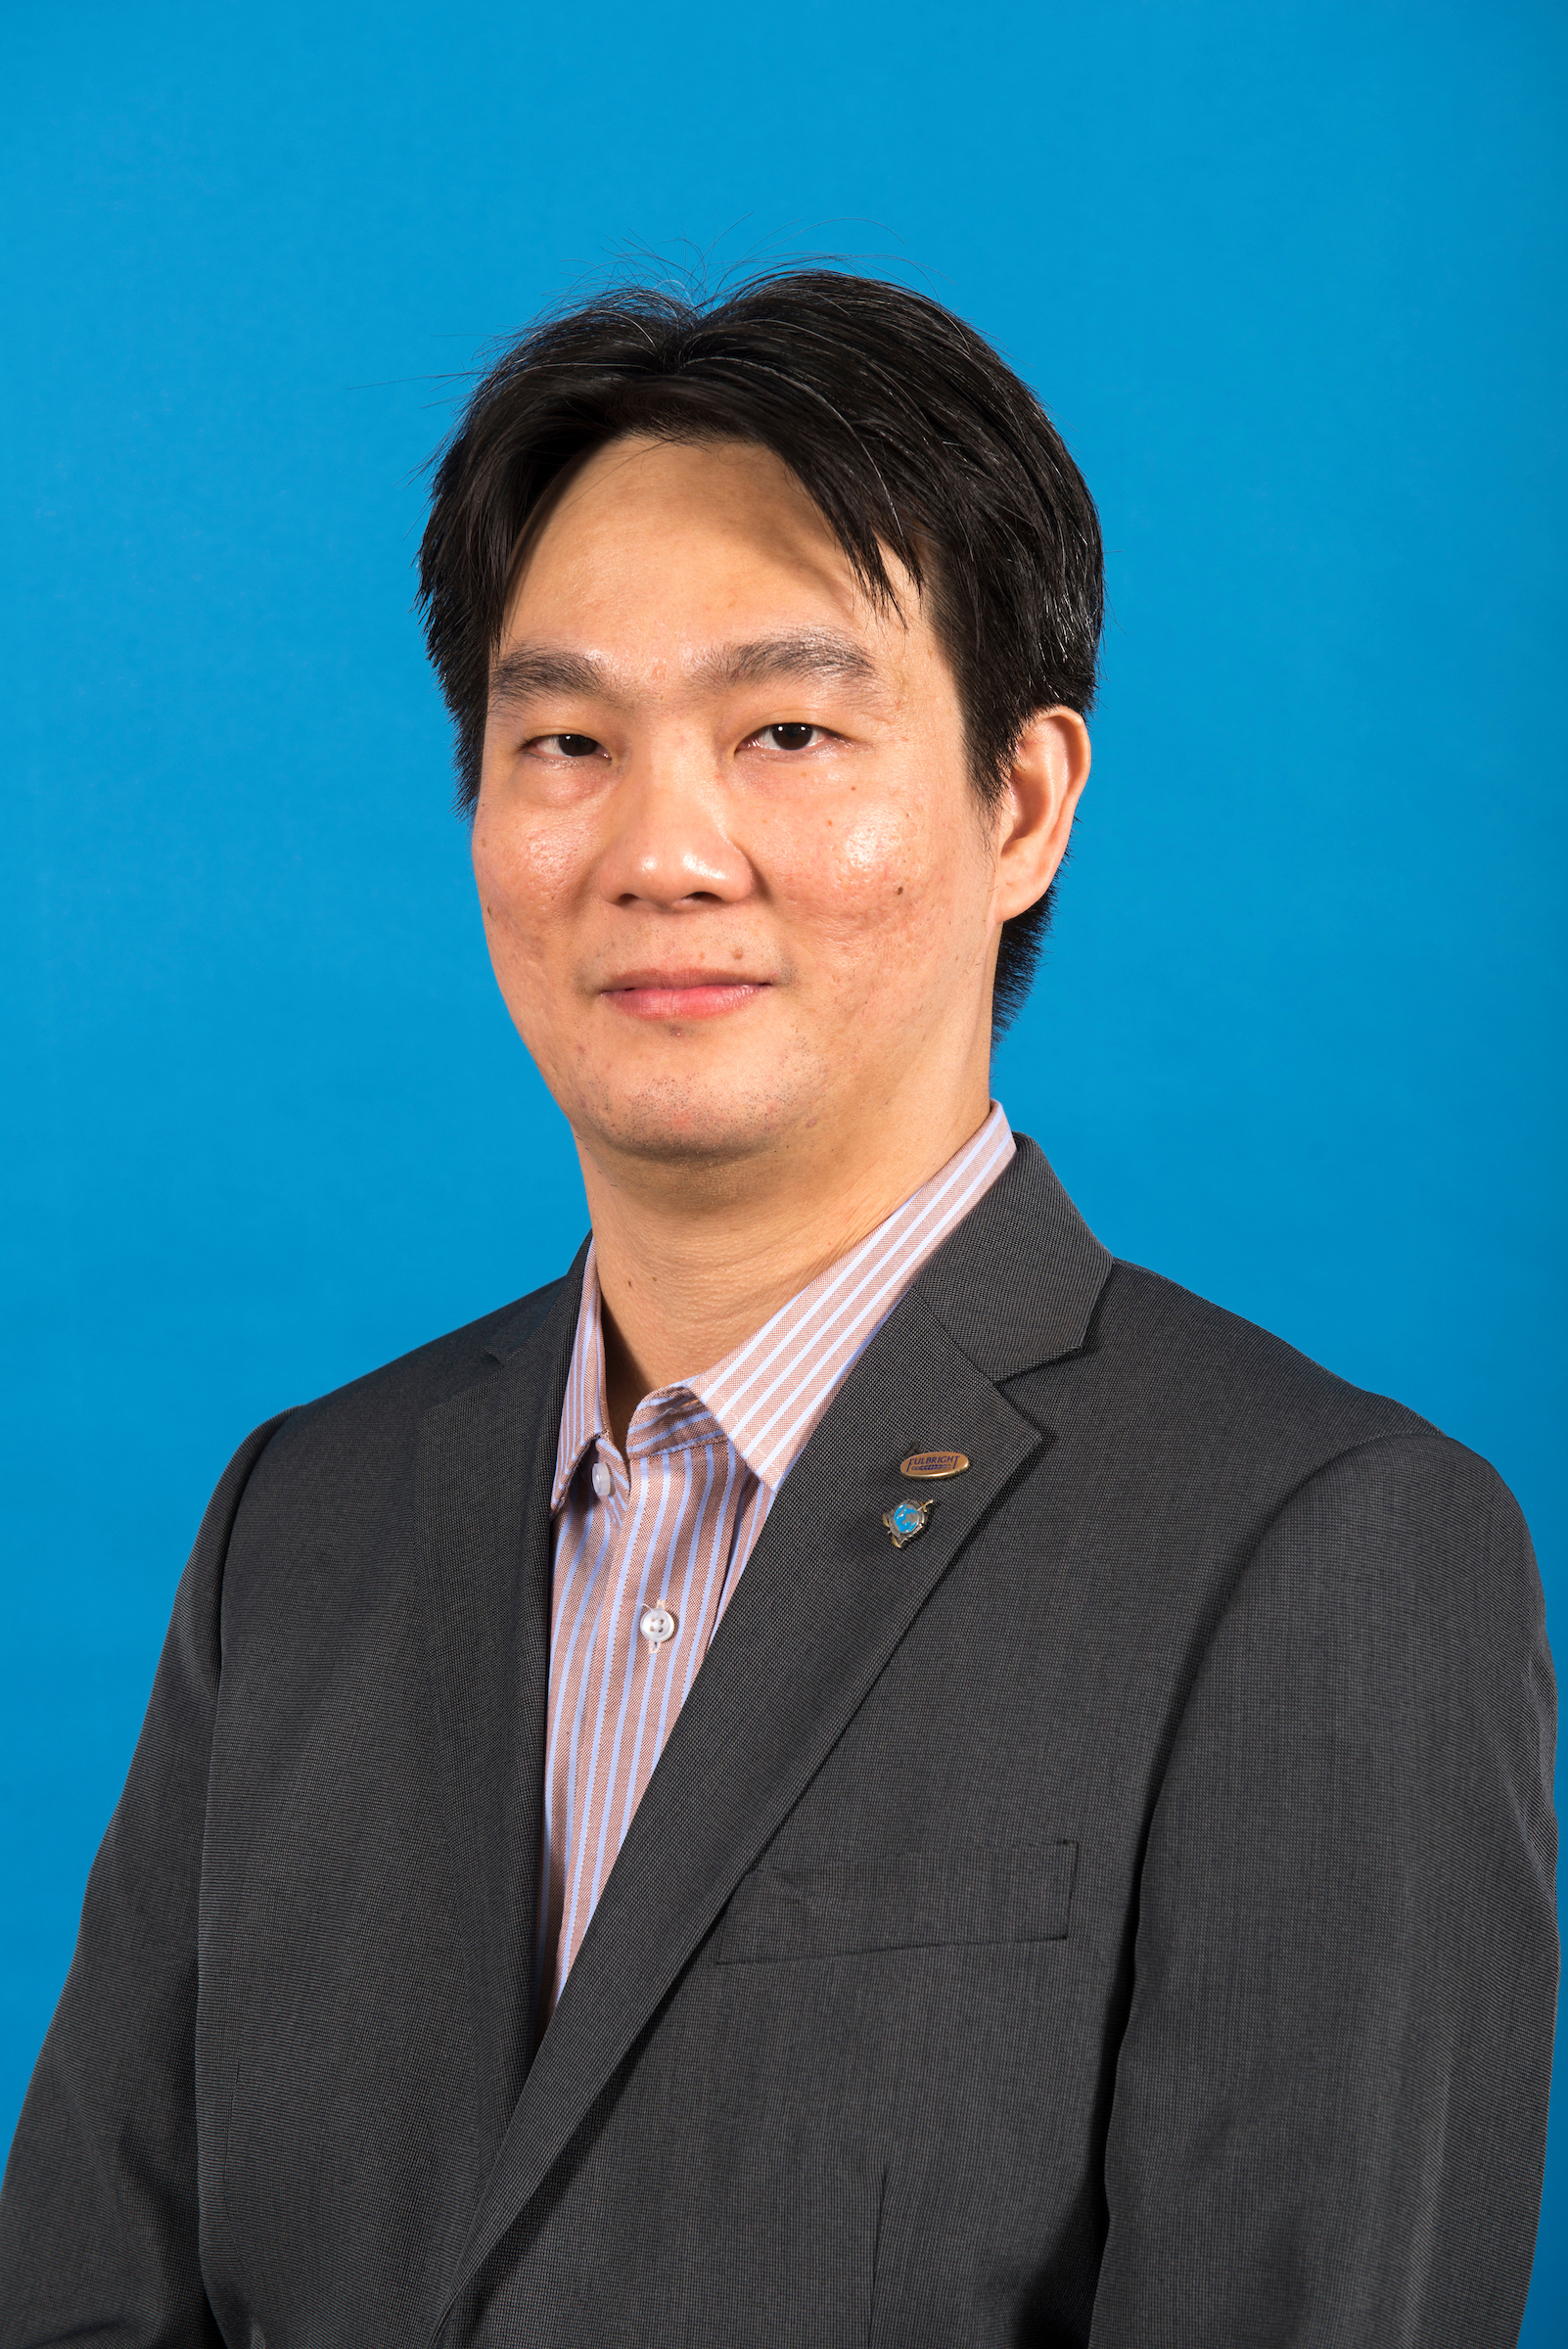 UTSA's Dr. Choo published a study this month that describes a statistical method for detecting online astroturfing.